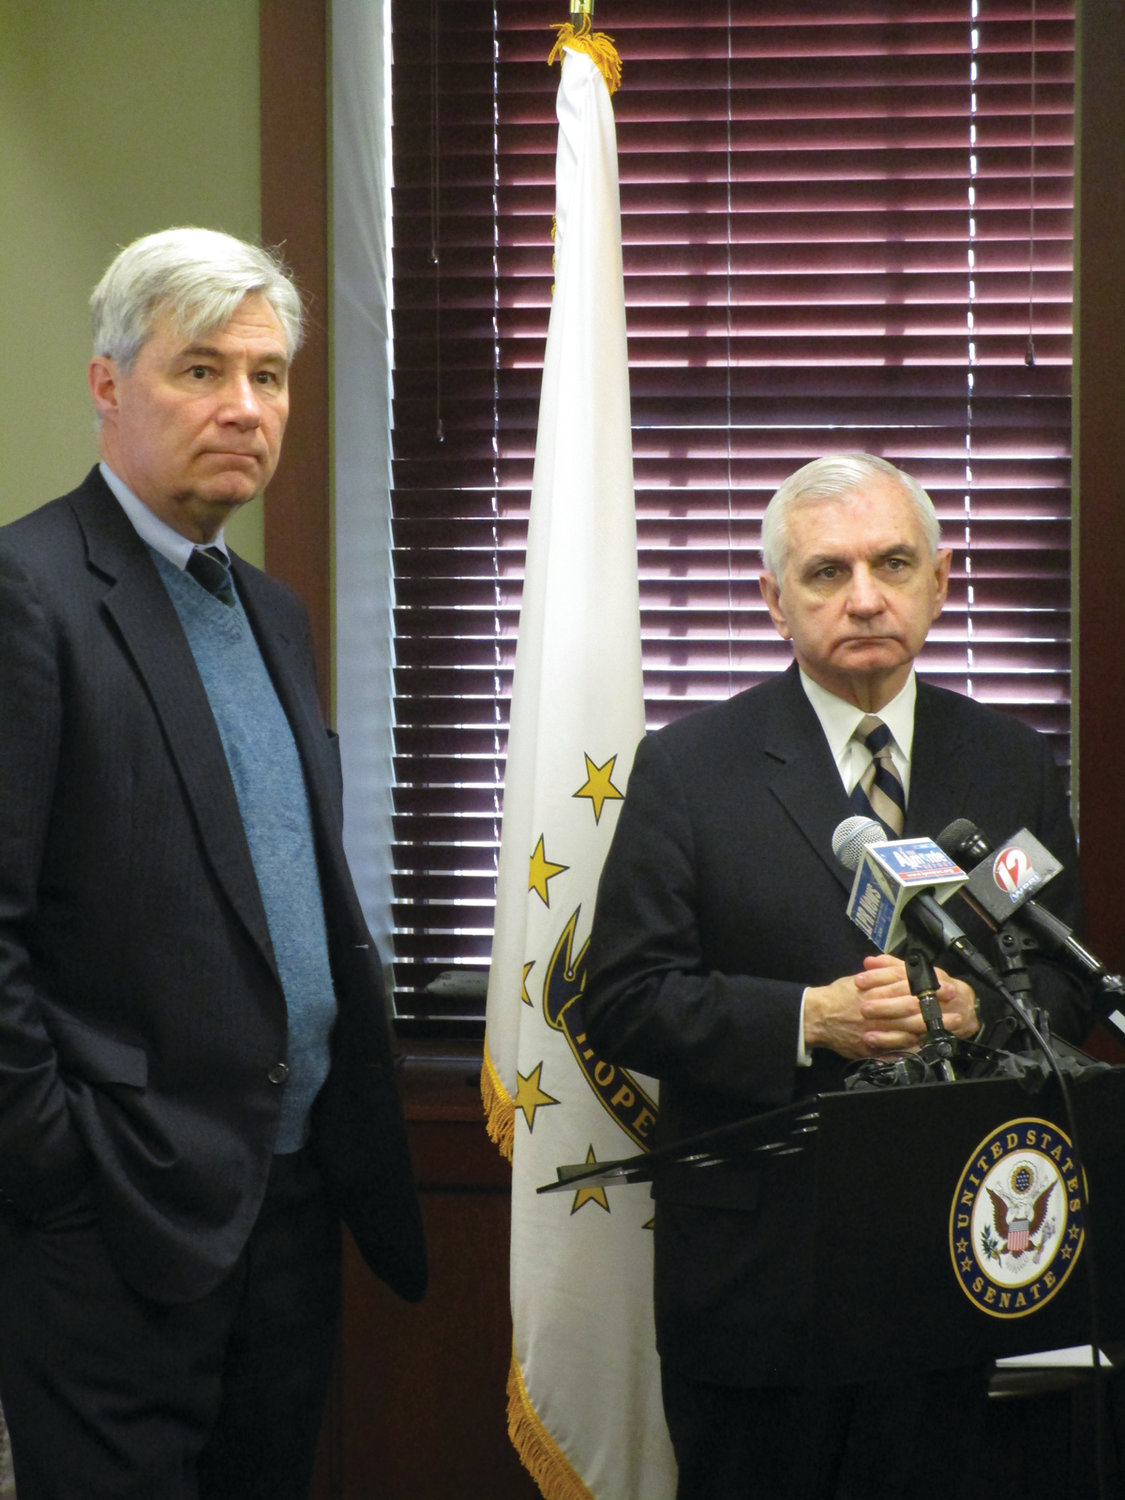 PREPARING FOR THE TRIAL: U.S. Sens. Sheldon Whitehouse, left, and Jack Reed speak about the impeachment trial of President Donald Trump at Reed's office in Cranston's Chapel View on Friday.